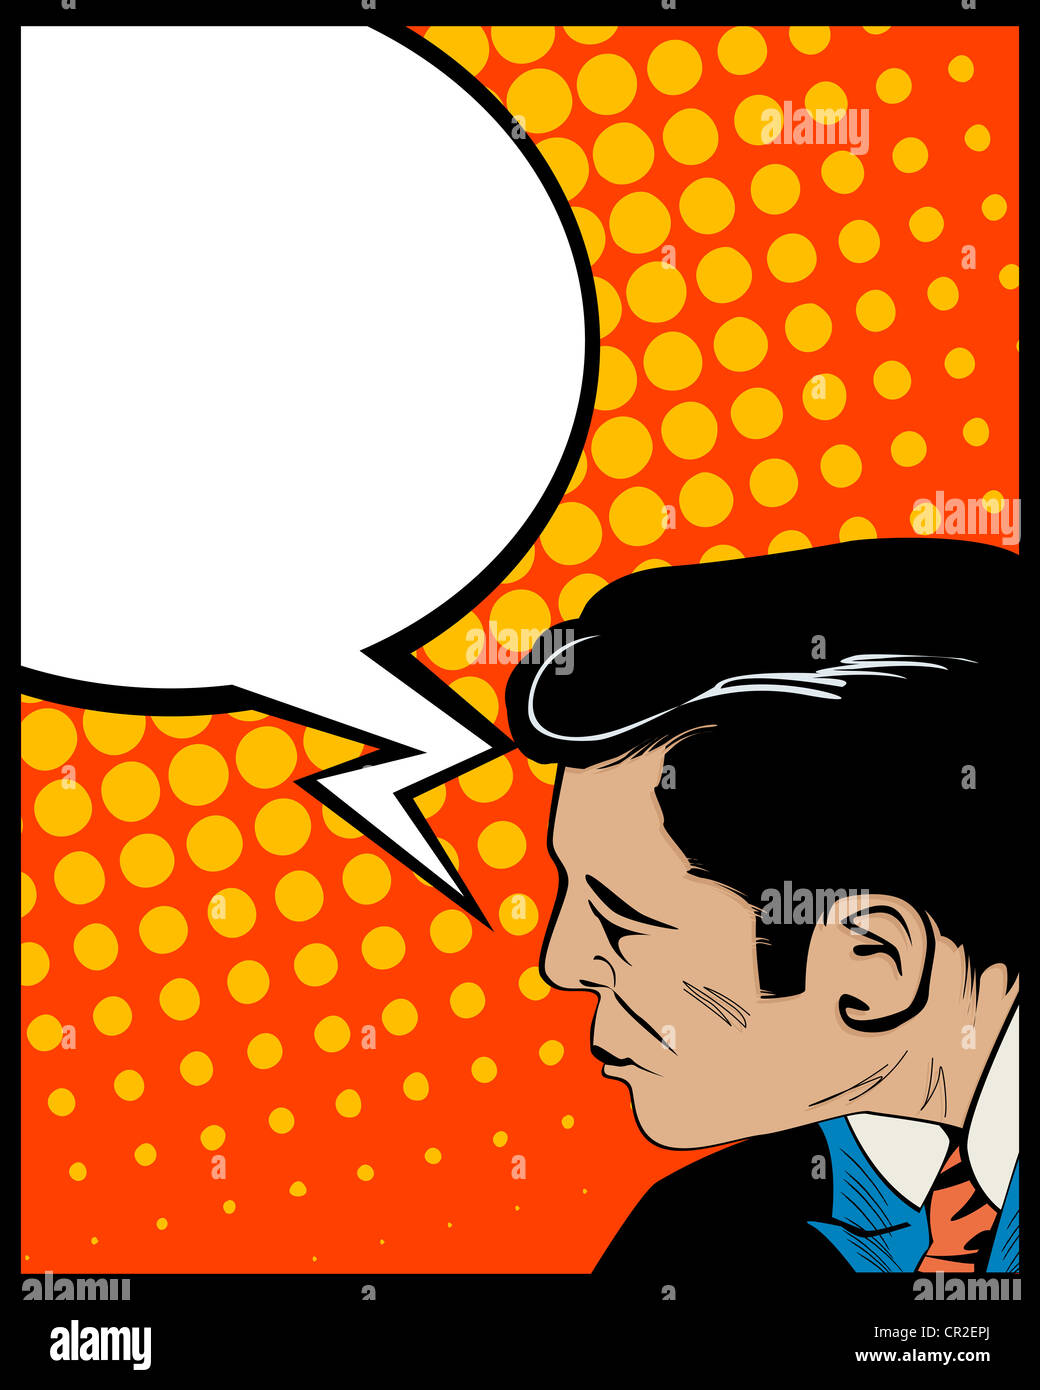 Pop Art style graphic with man and speech bubble Stock Photo